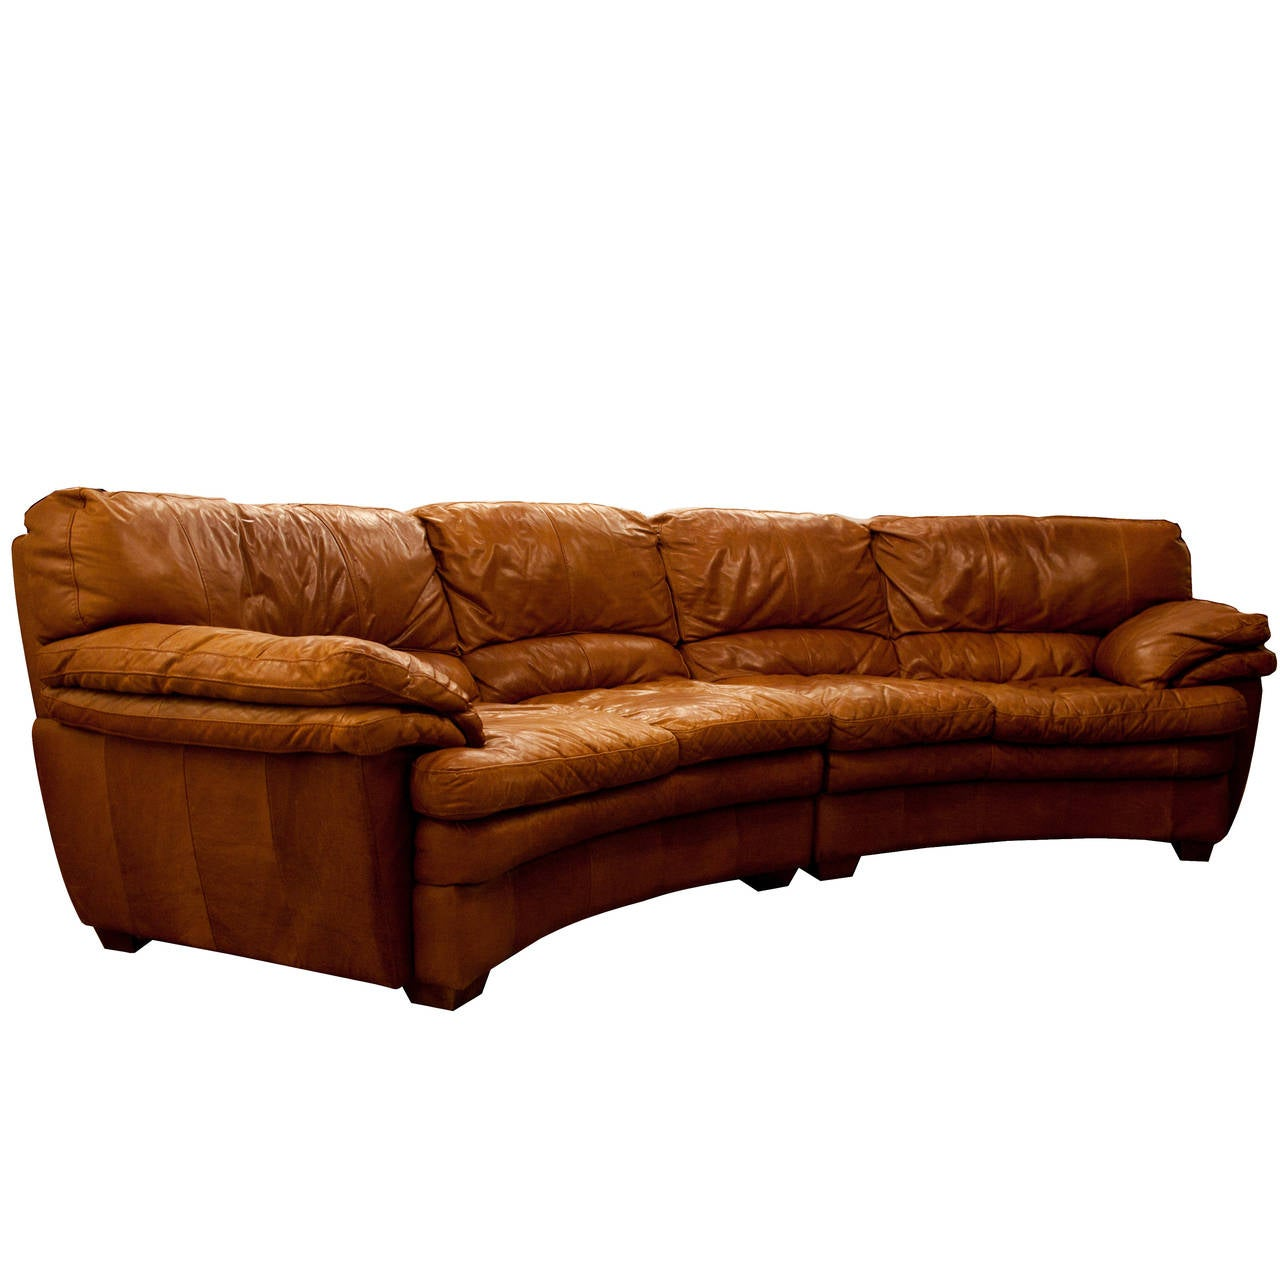 Curved Sofa Sectional Modern Images Like Leathers Leather